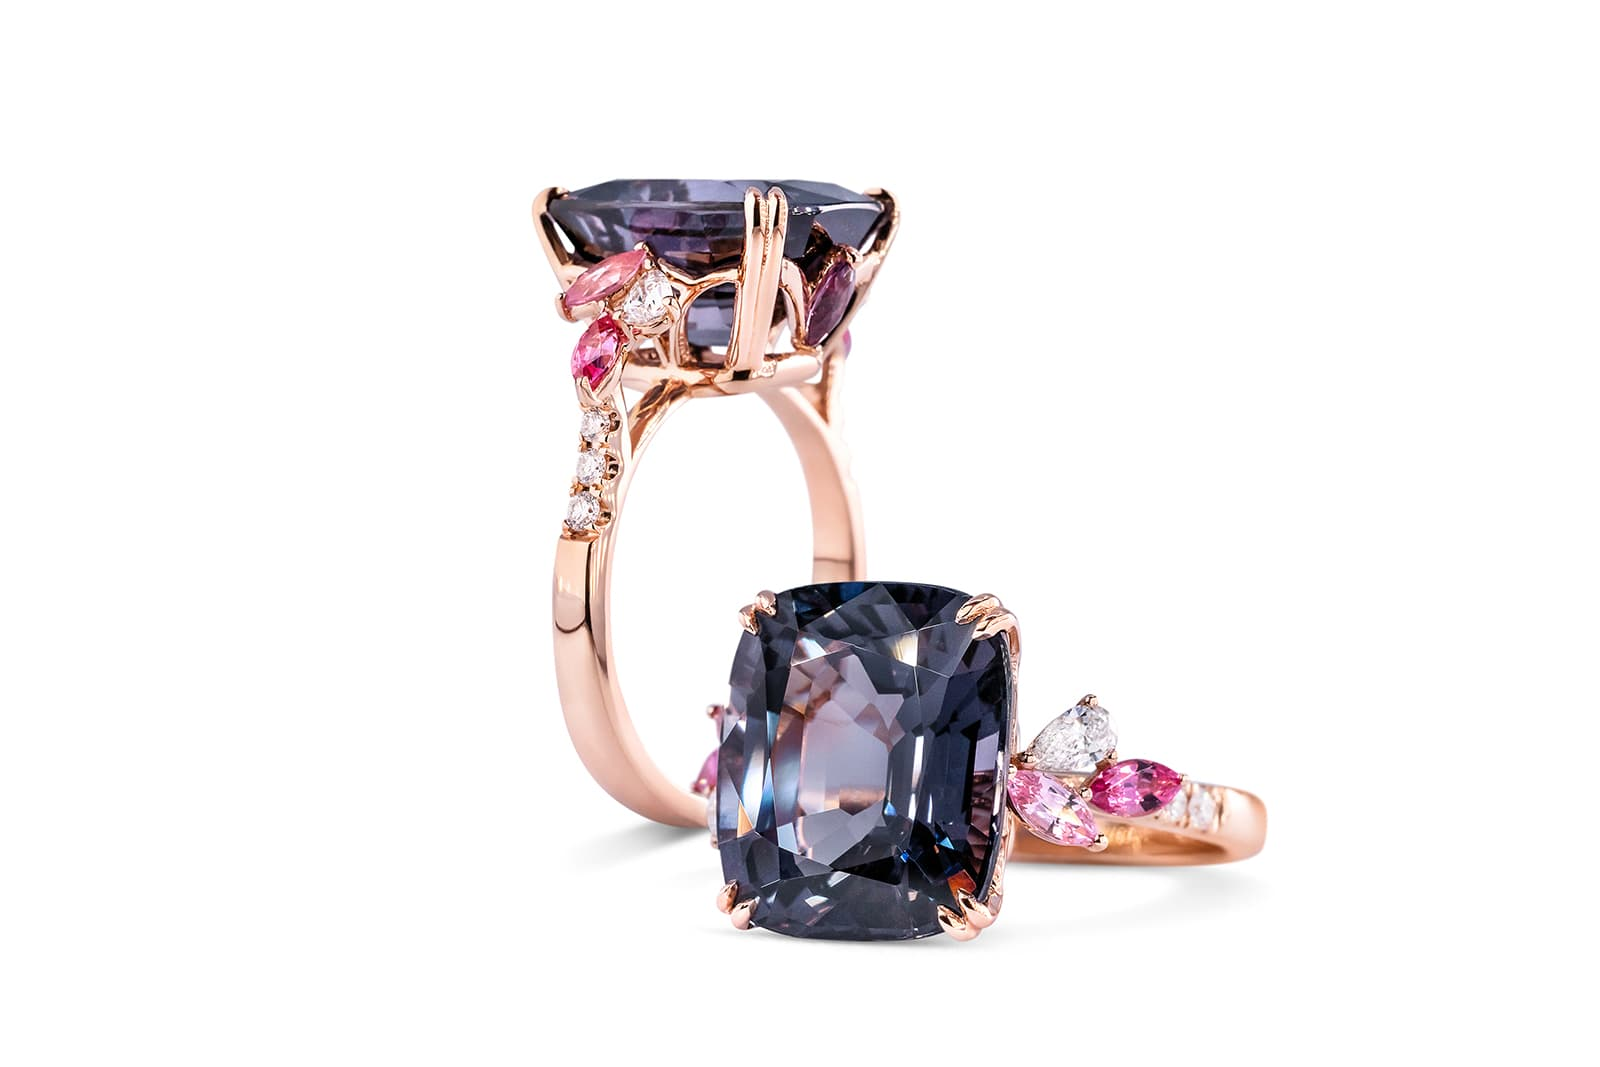 Almost 8 carat grey spinel Madly ring with hot pink spinel and marquise diamond accents